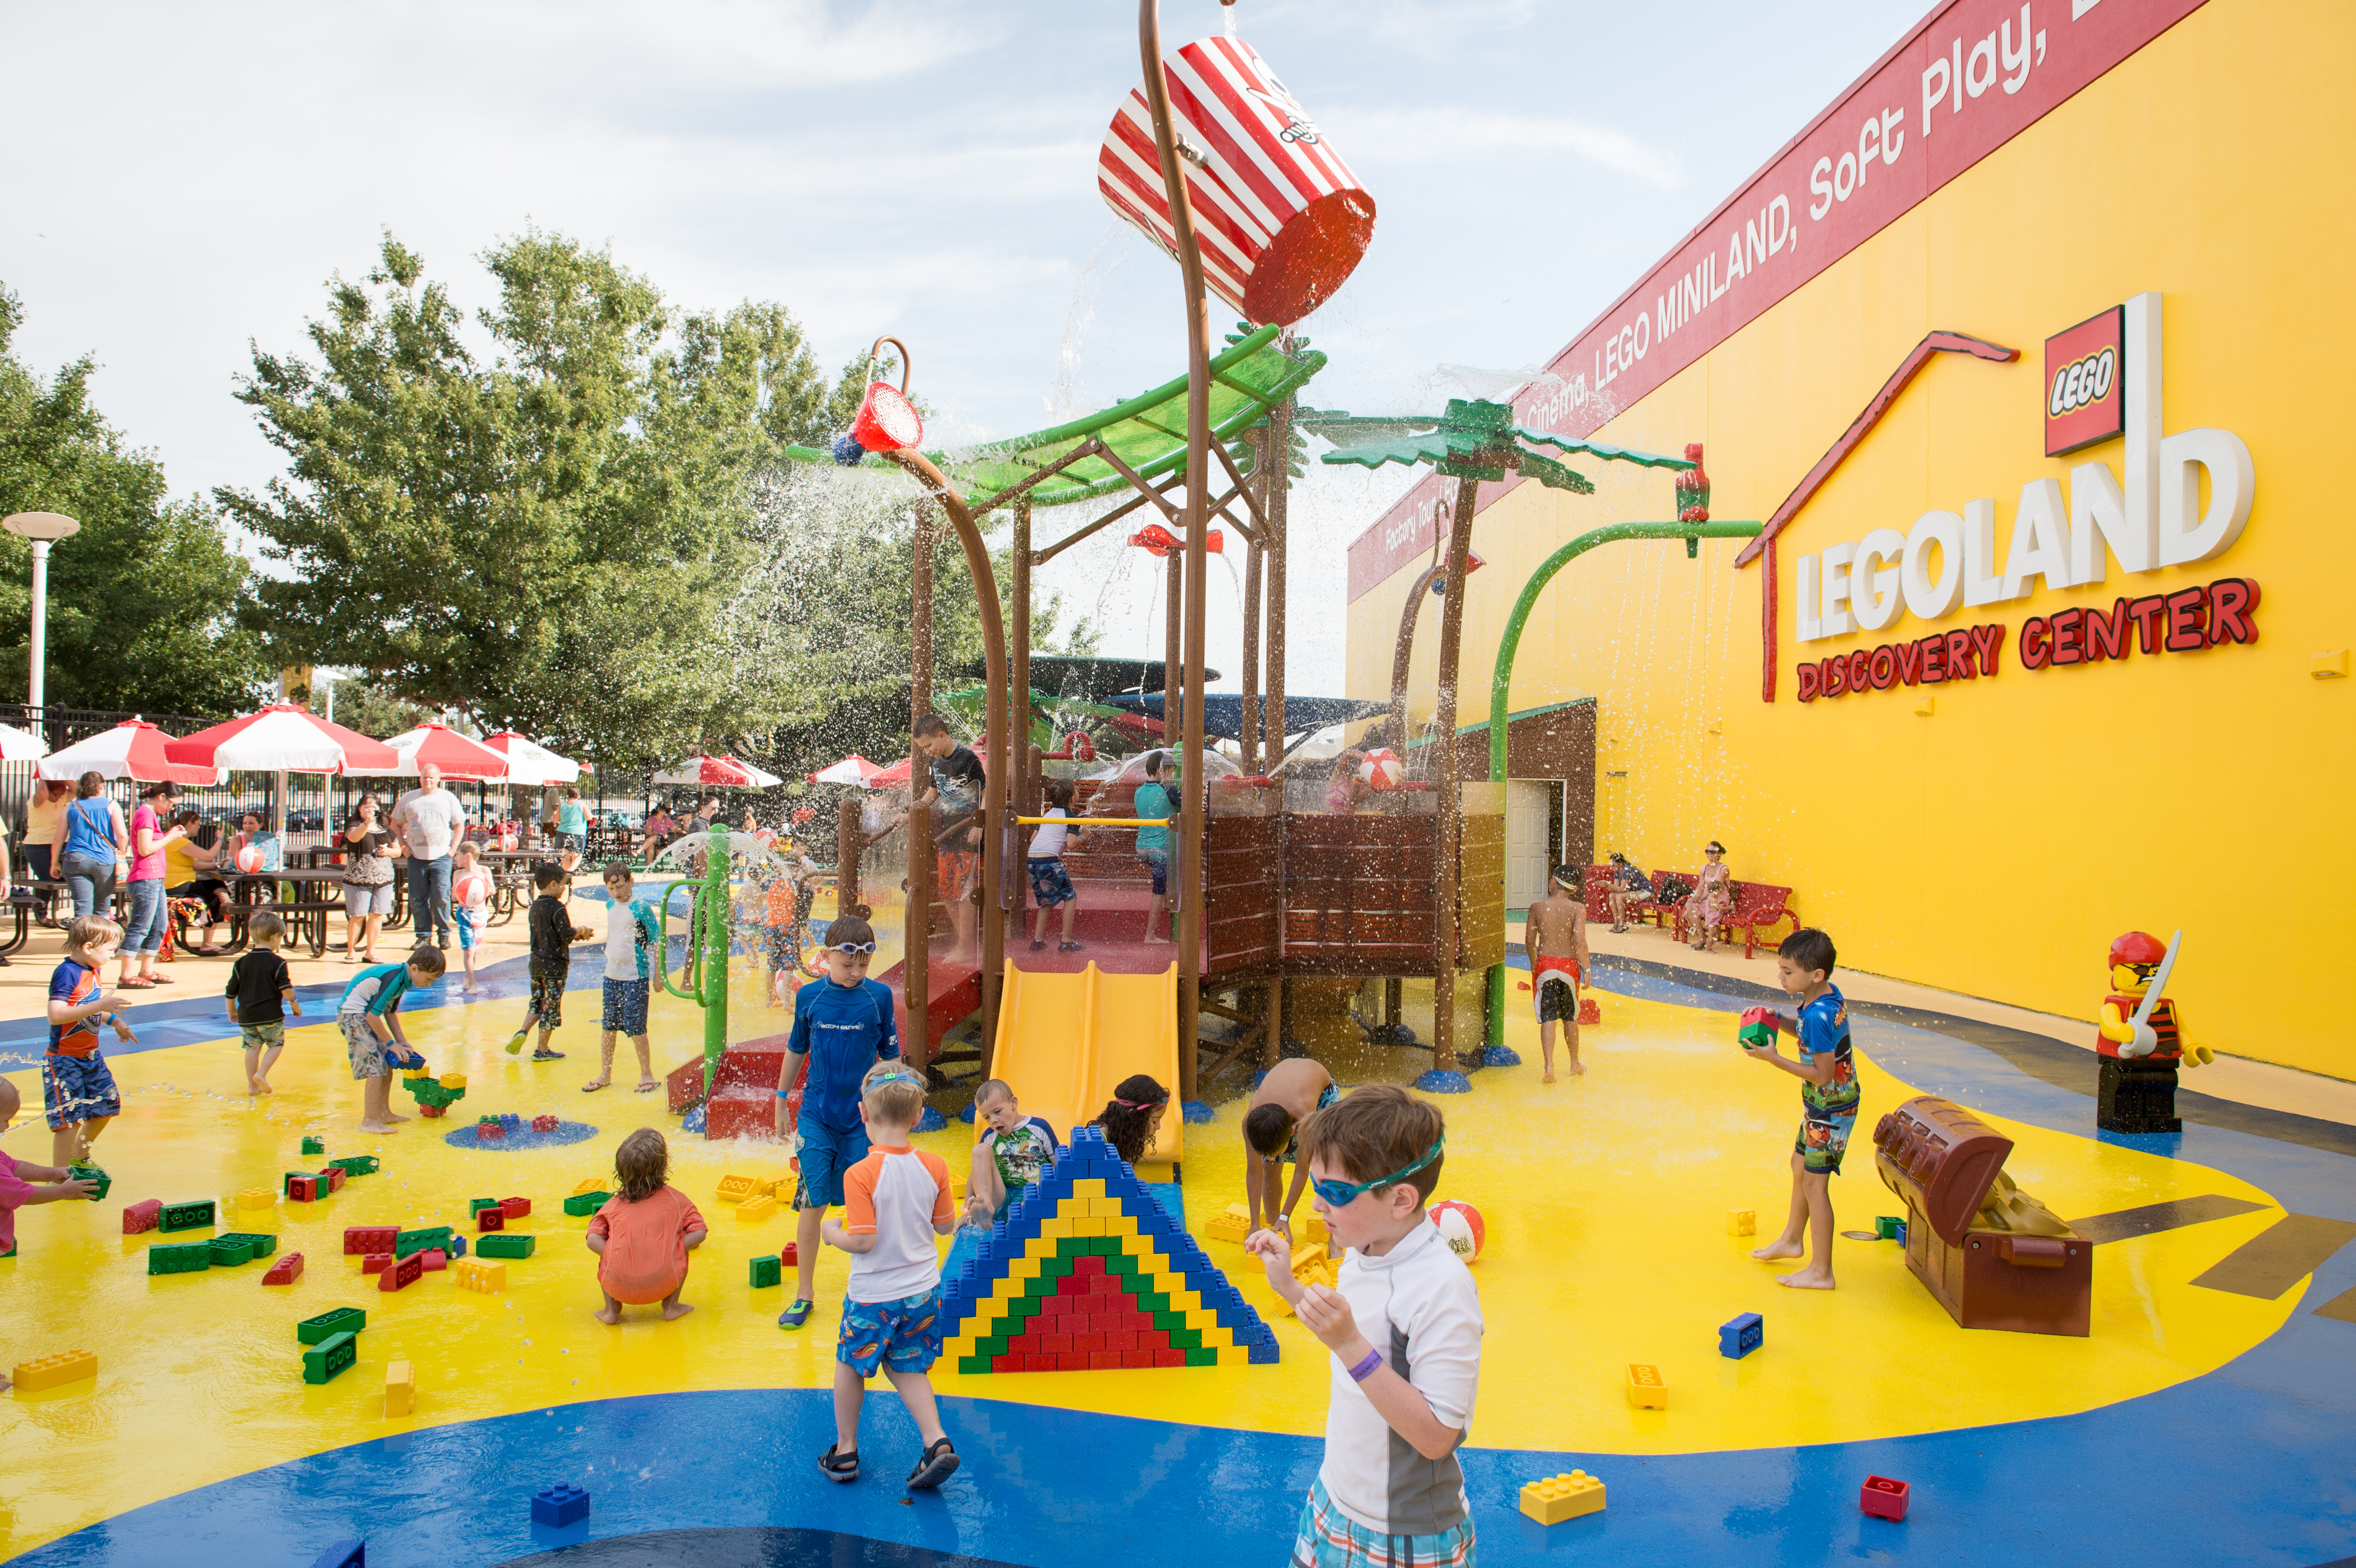 Summer Fun at Pirate Beach in Grapevine